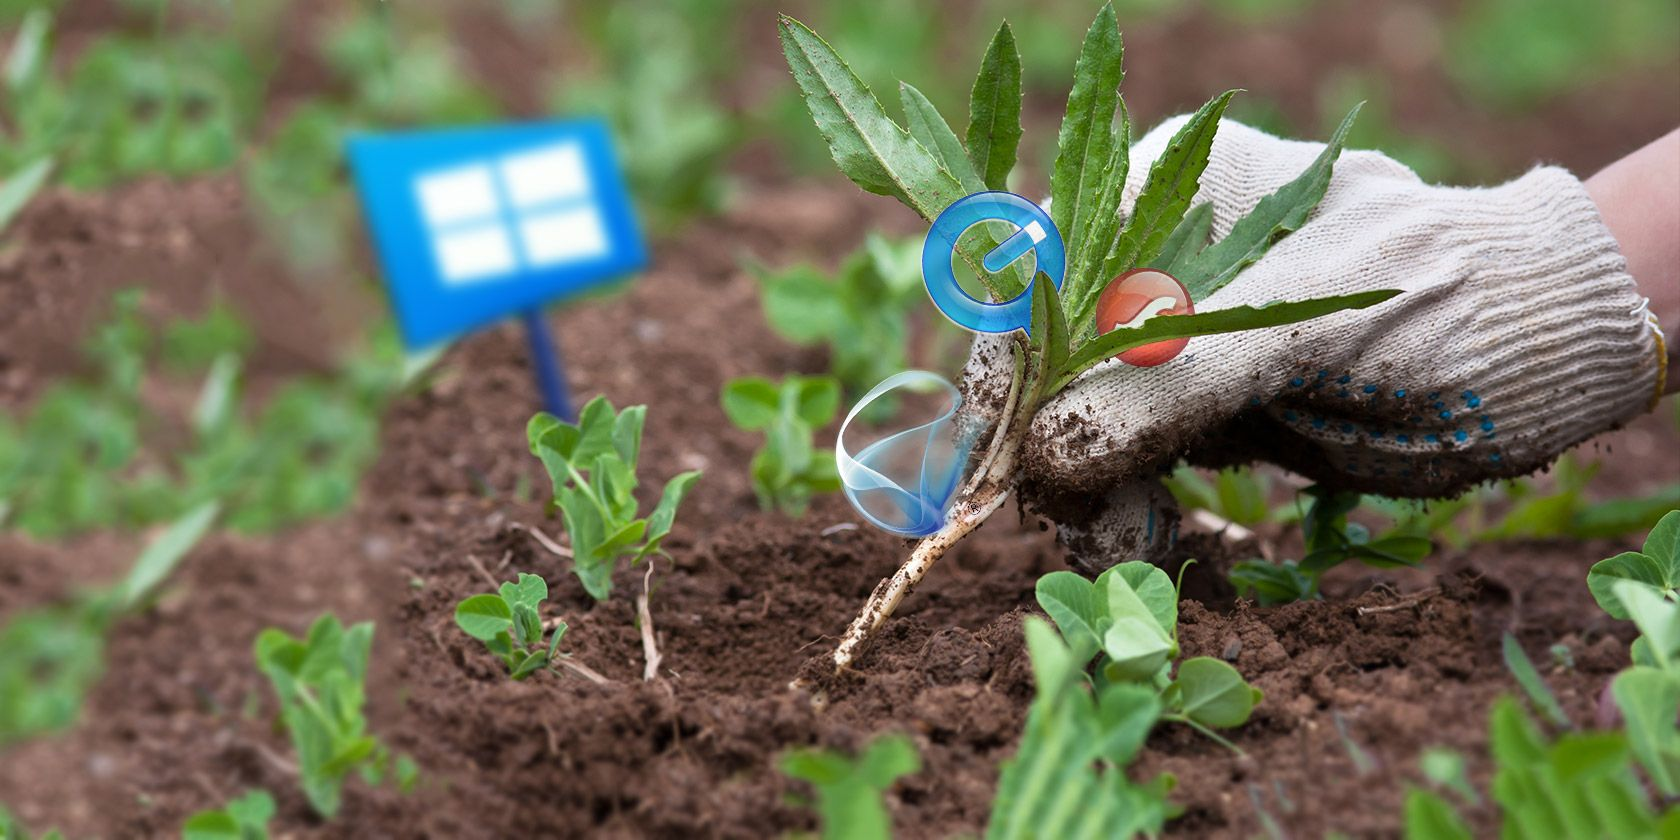 12 Windows Apps You Should Uninstall NOW